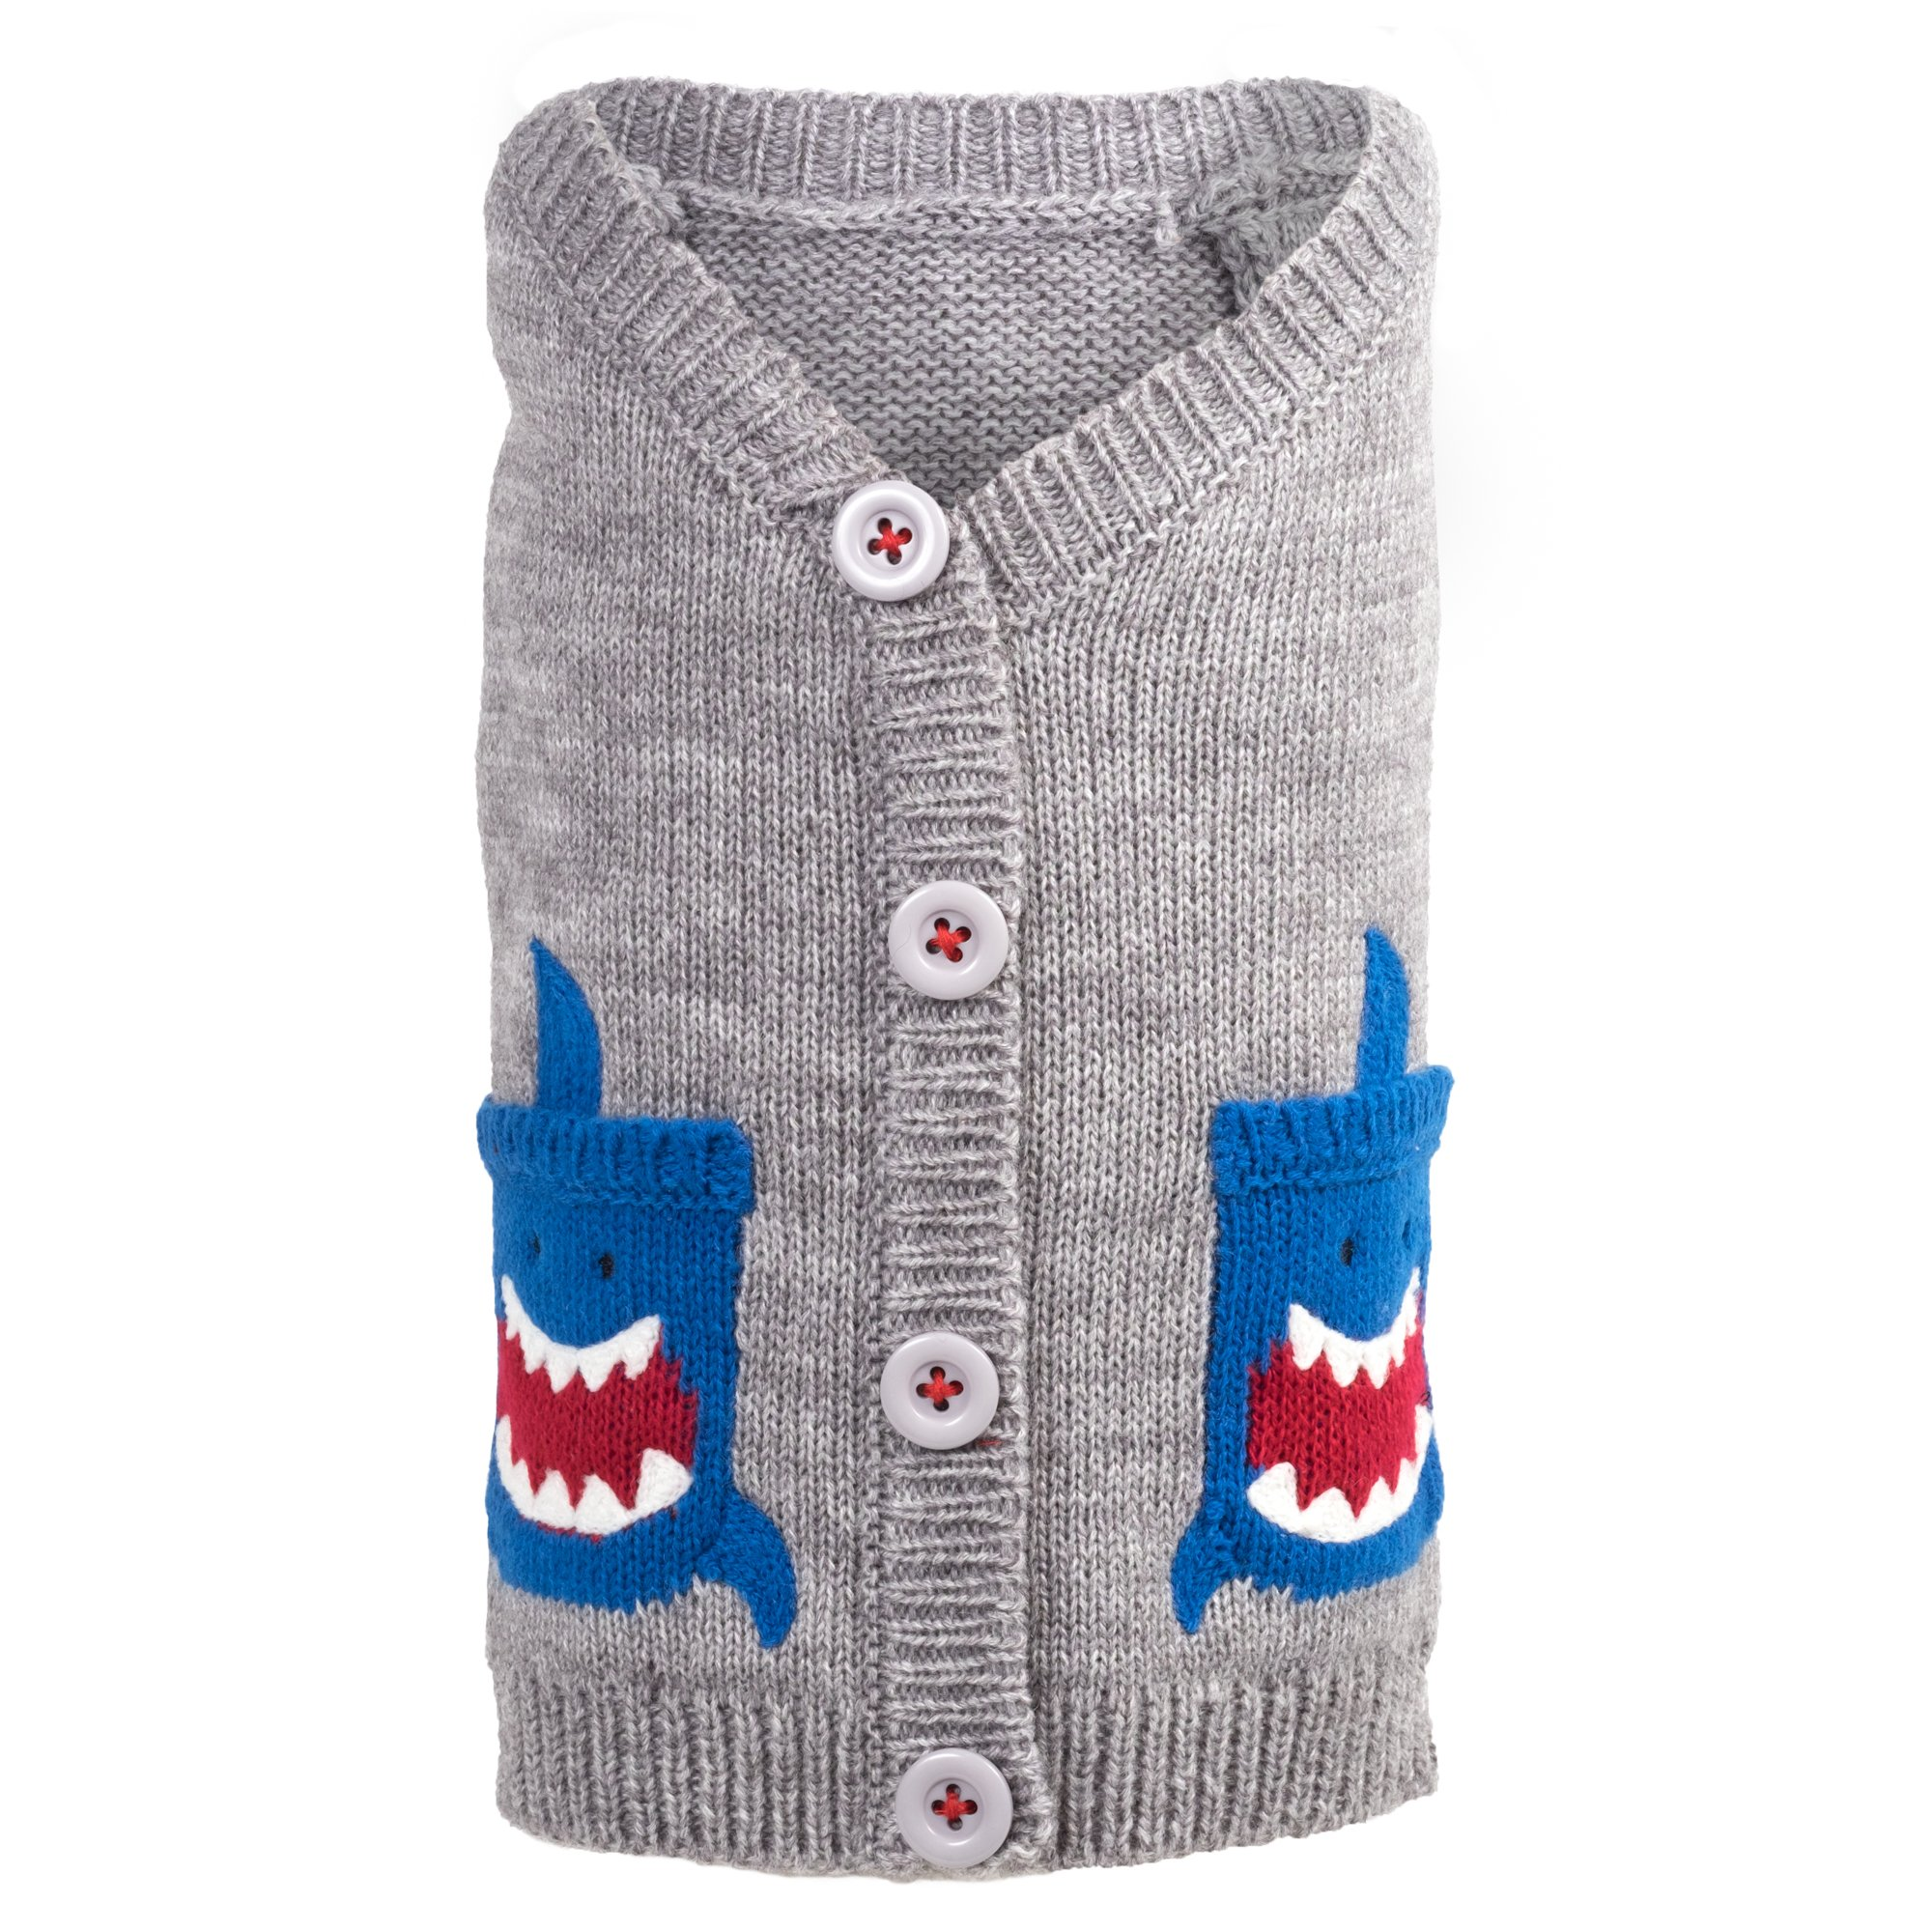 The Worthy Dog Shark Cardigan for Dogs, XX-Large, Gray